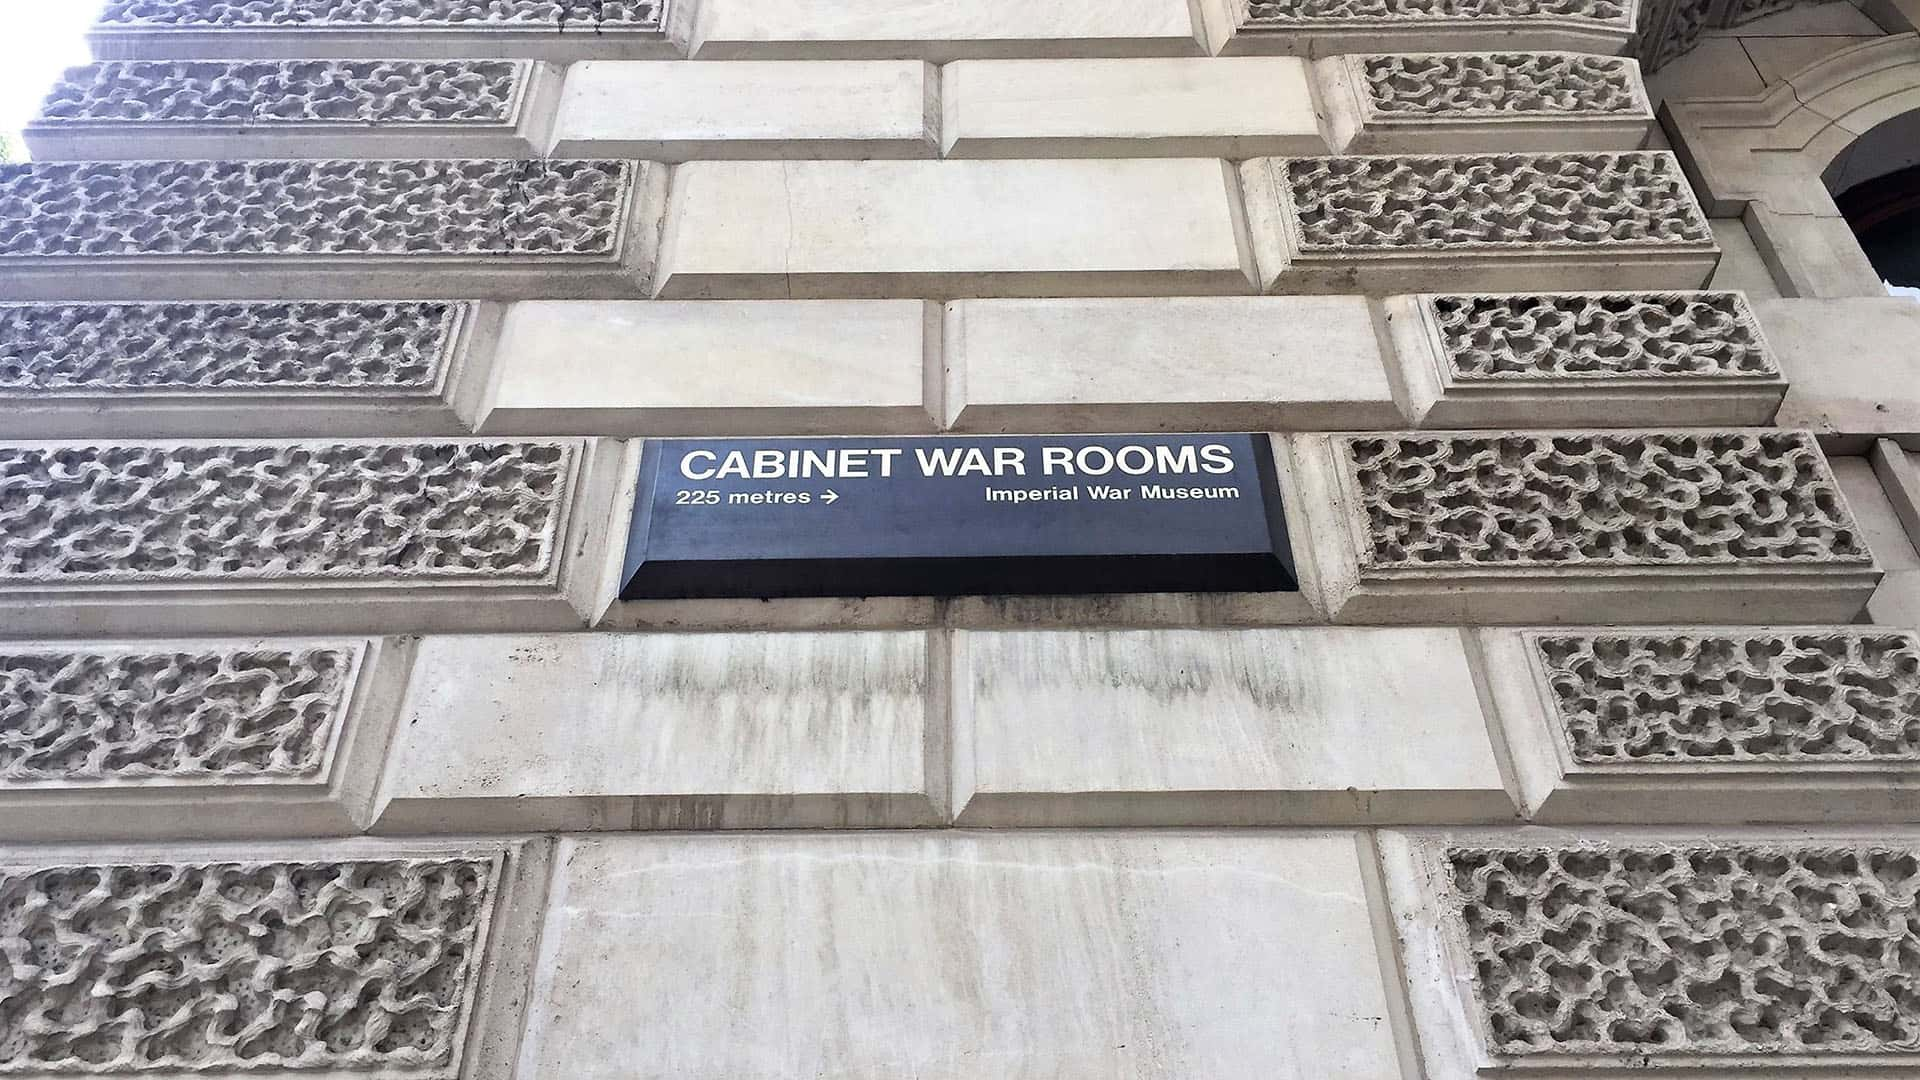 Cabinet War Rooms at the Imperial War Museum – The Crown London Tour